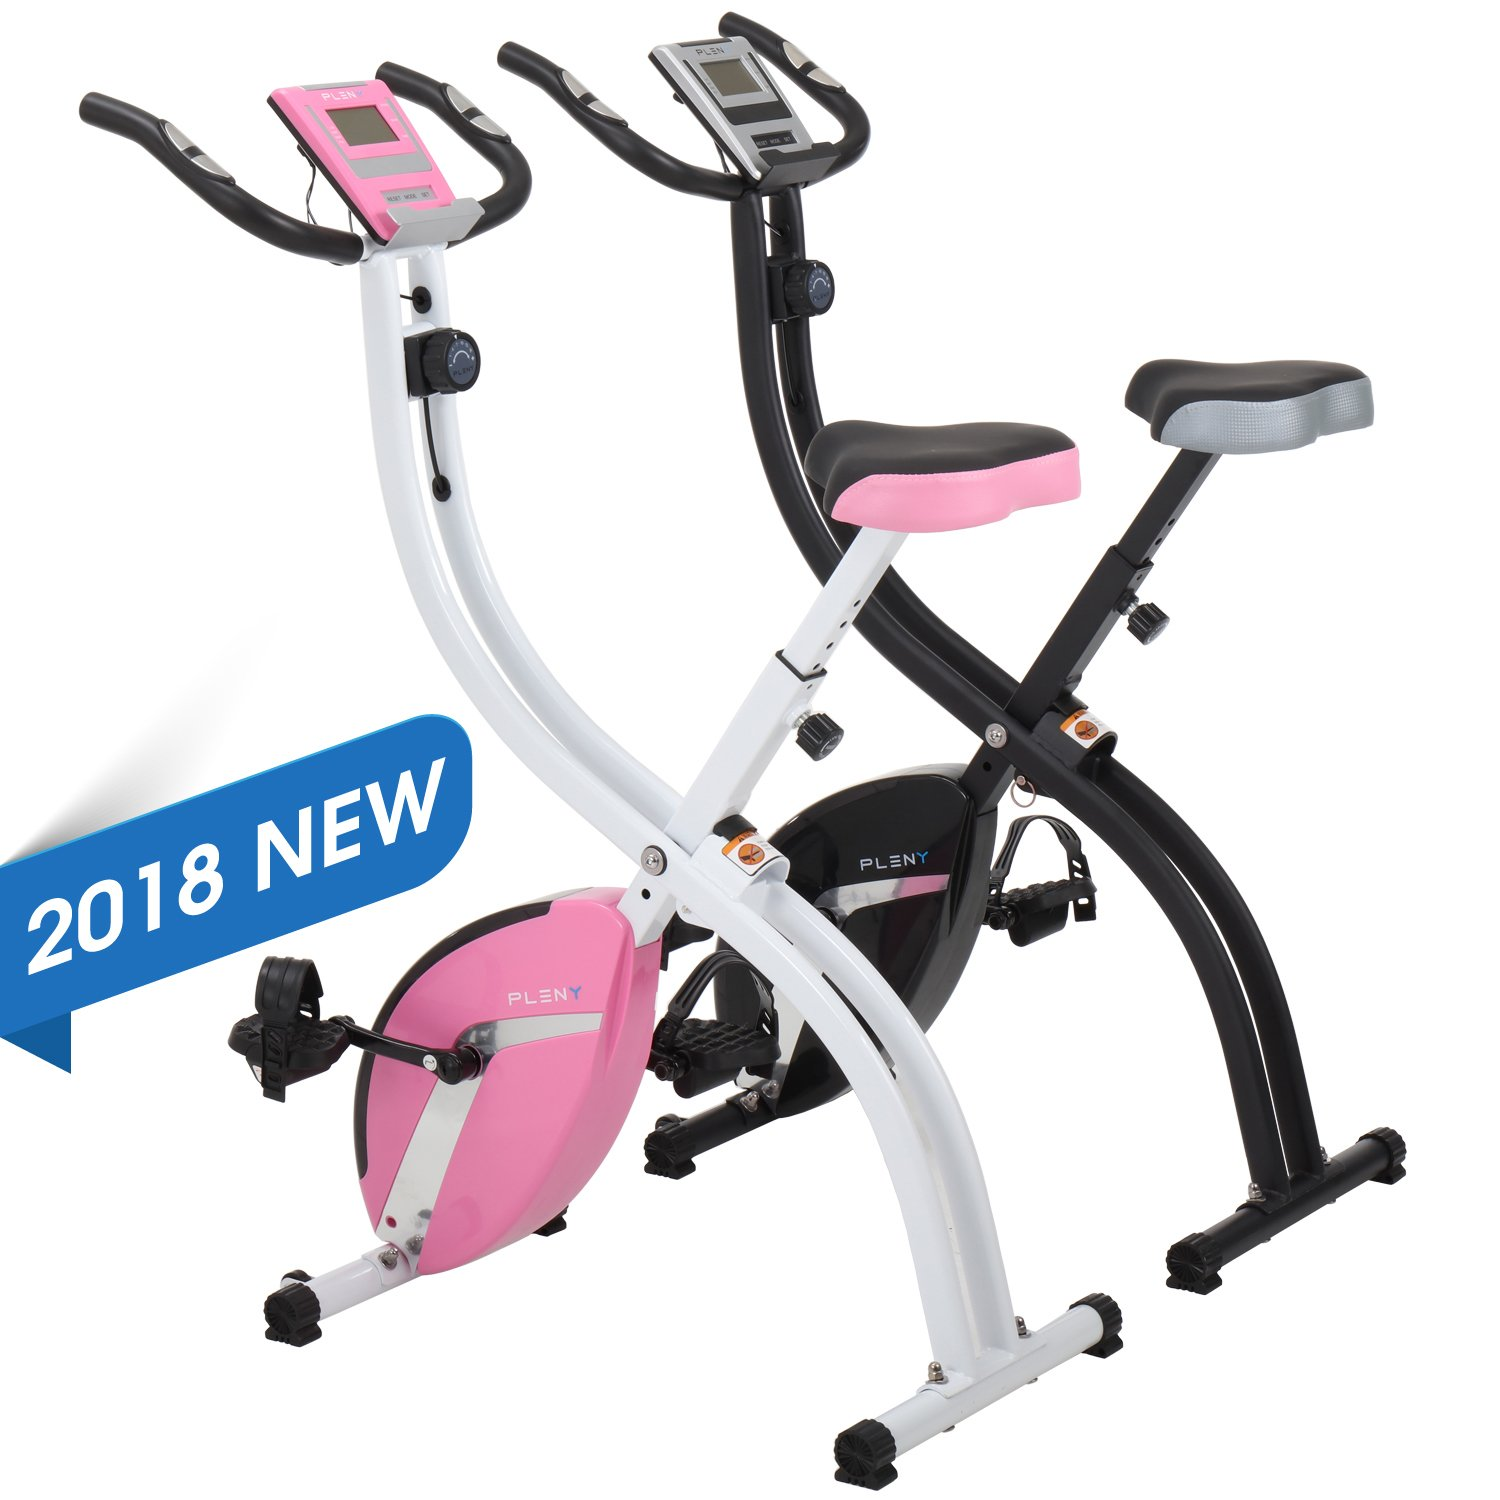 PLENY Foldable Upright Stationary Exercise Bike with 16 Level Resistance, New Exercise Monitor with Phone/Tablet Holder (Pink) by PLENY (Image #3)